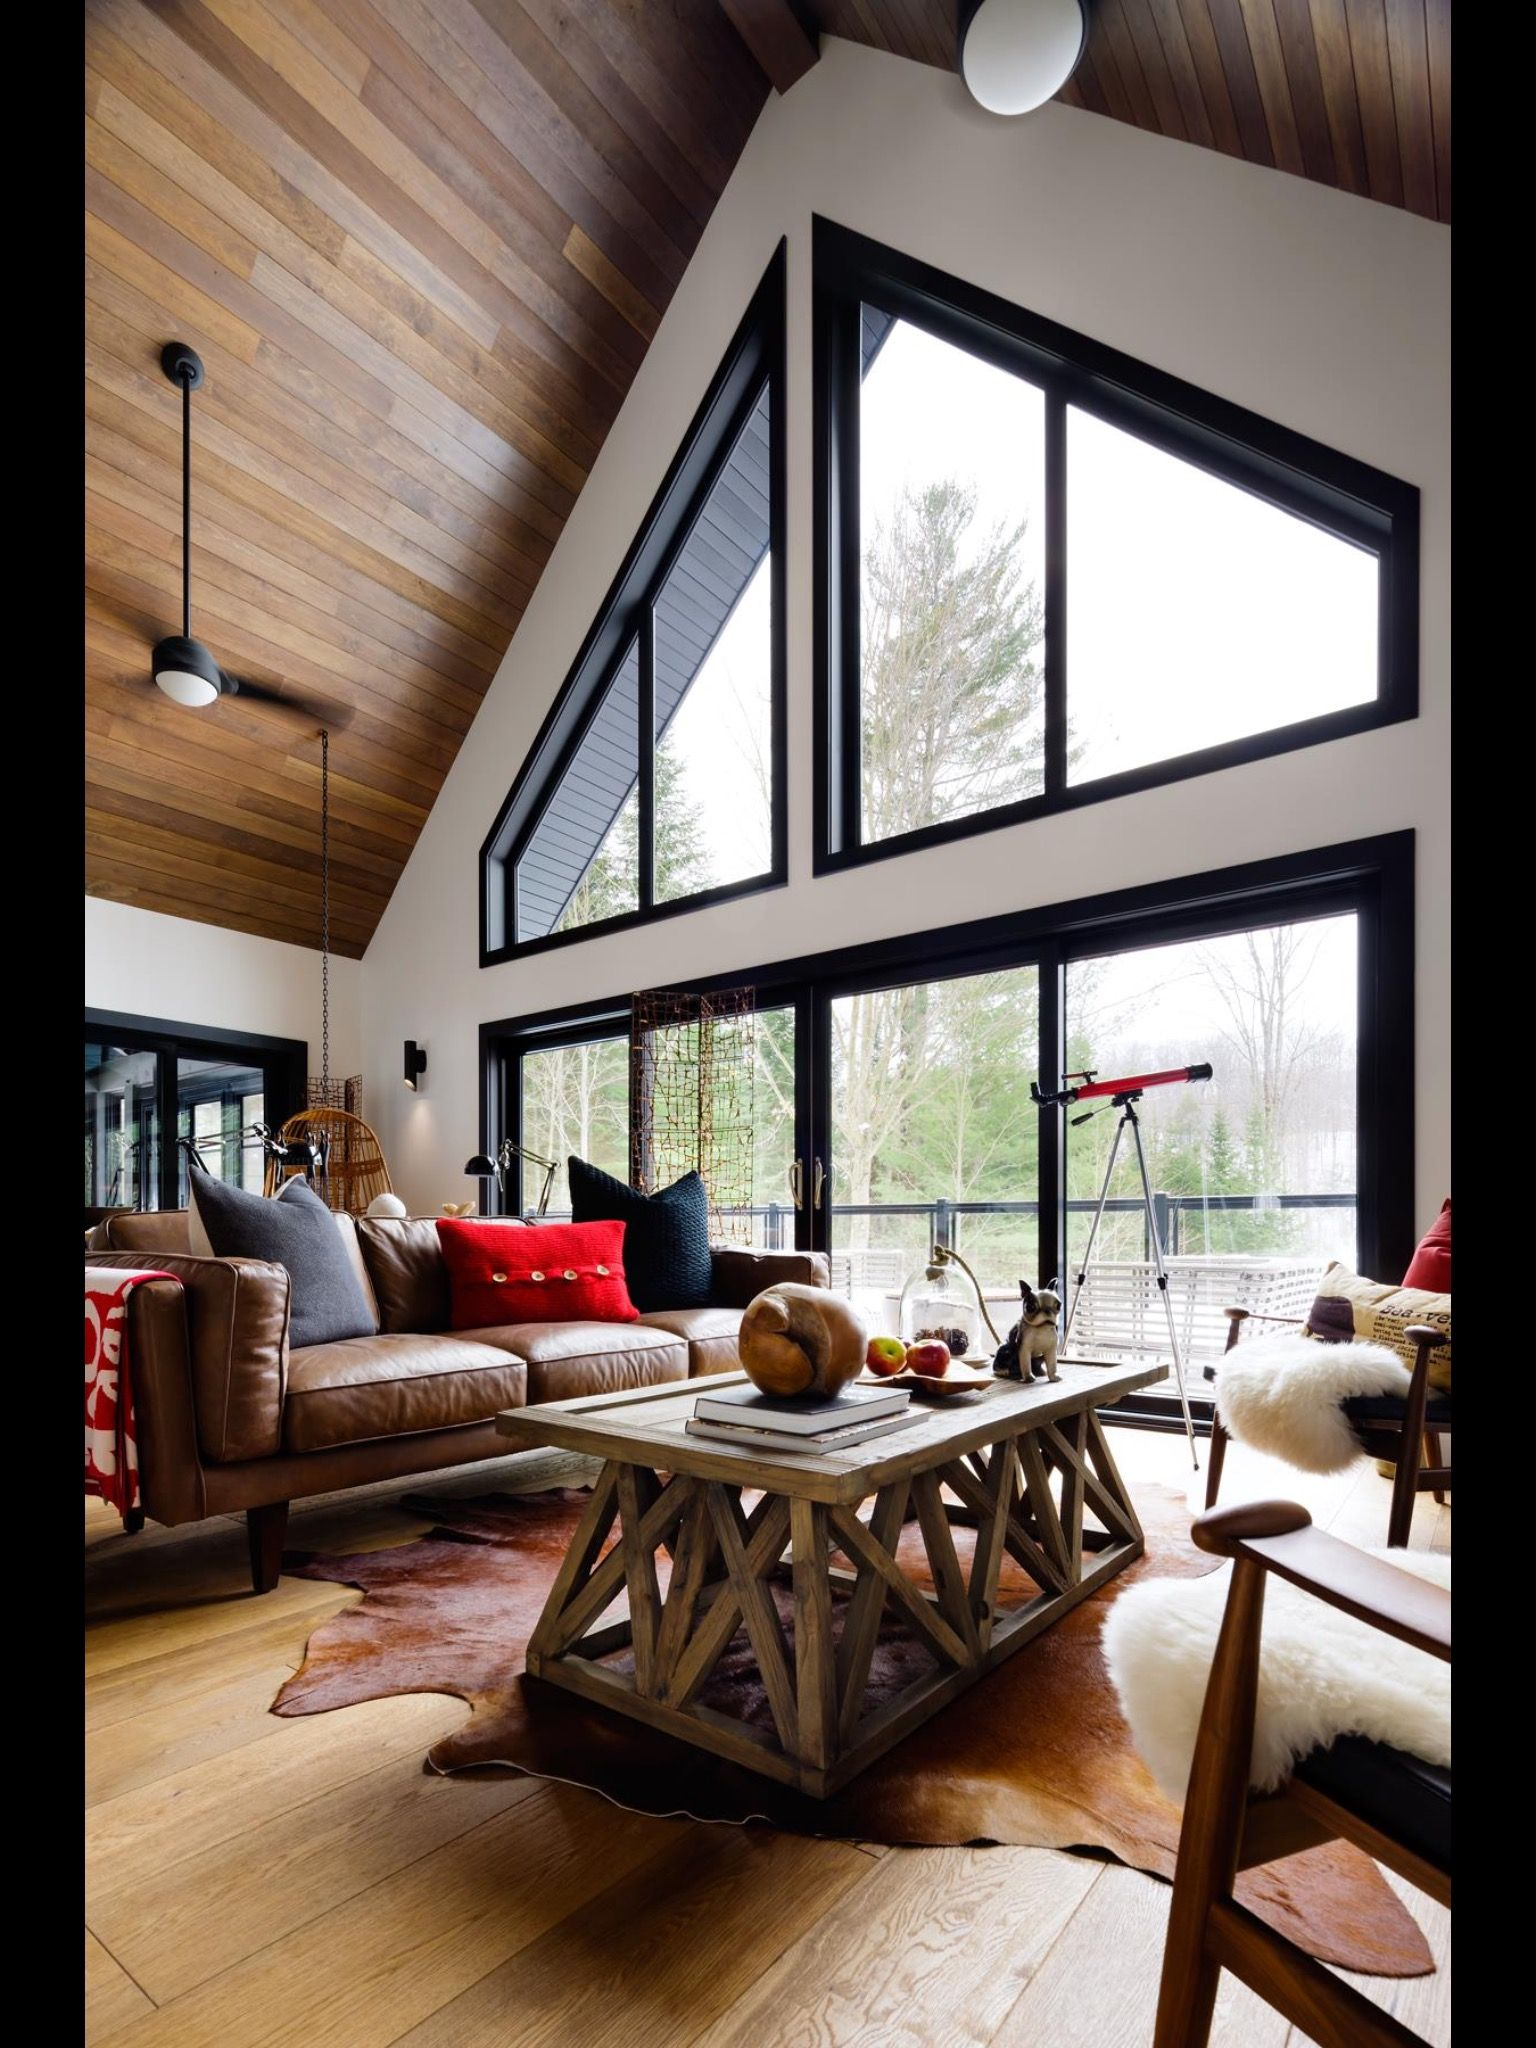 Plan Chalet Chalet Home Plans Chalet Home Designs From